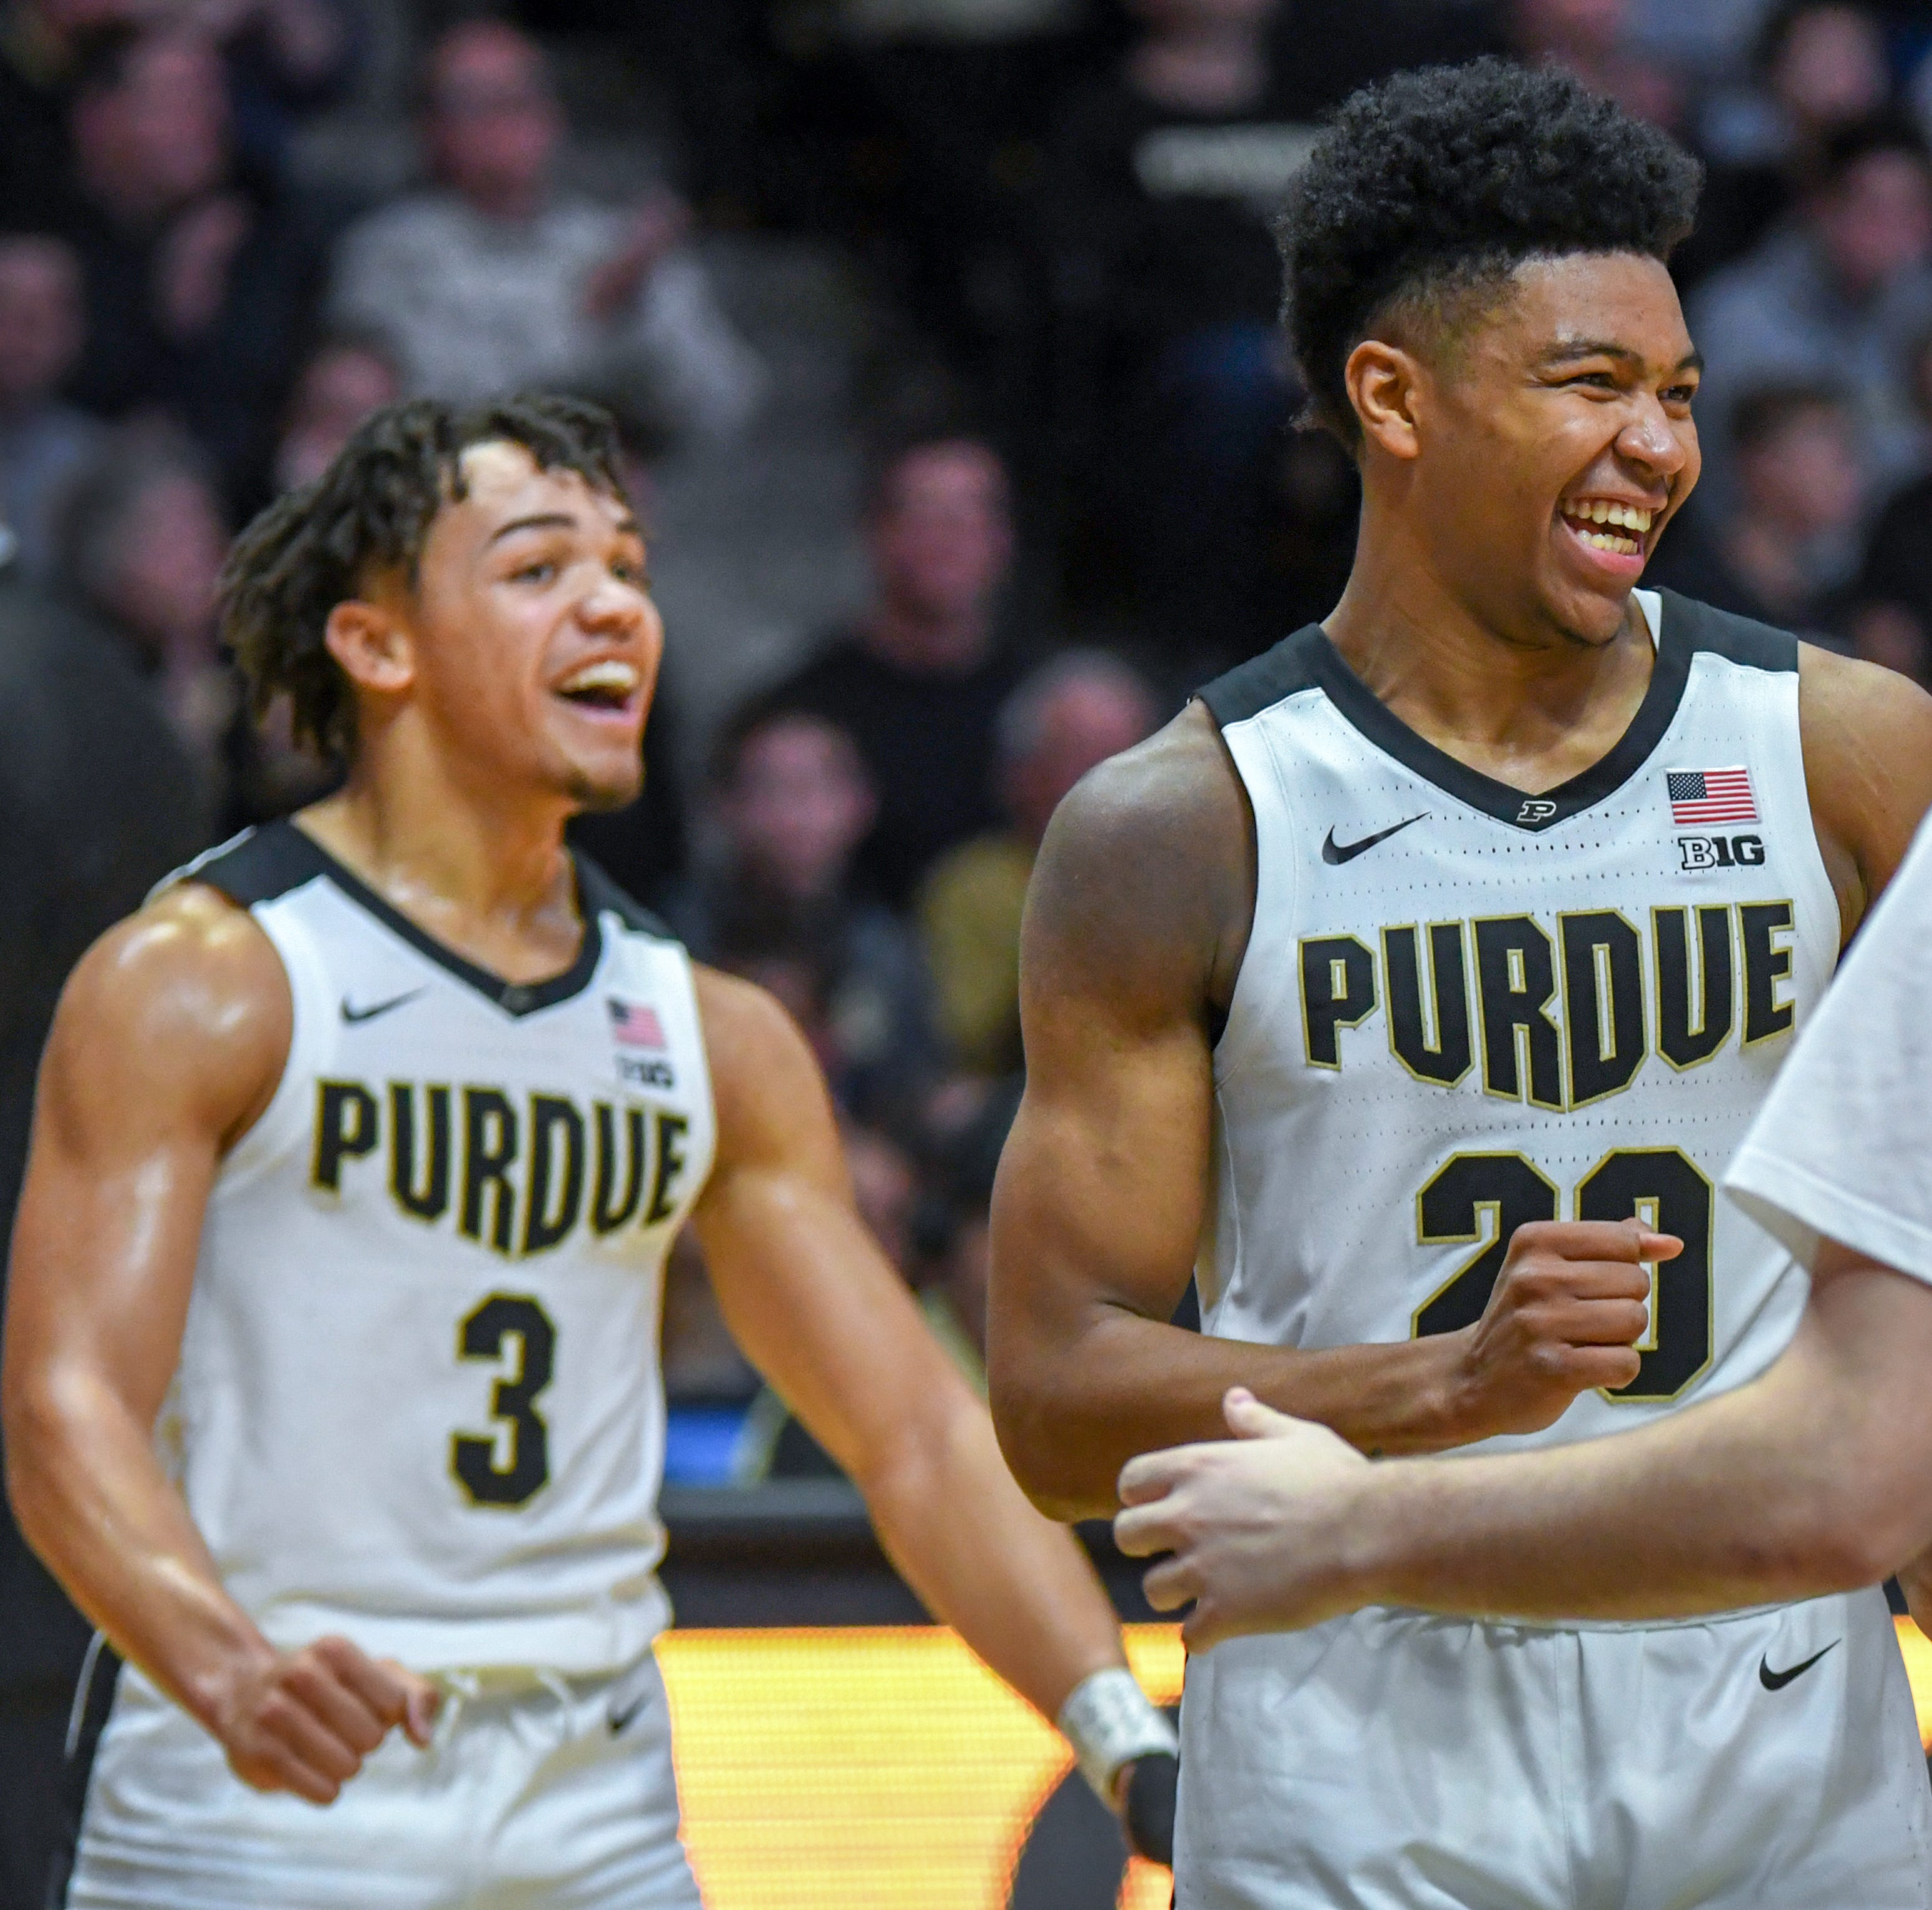 Purdue basketball receives NCAA tournament 3 seed, opens against Old Dominion